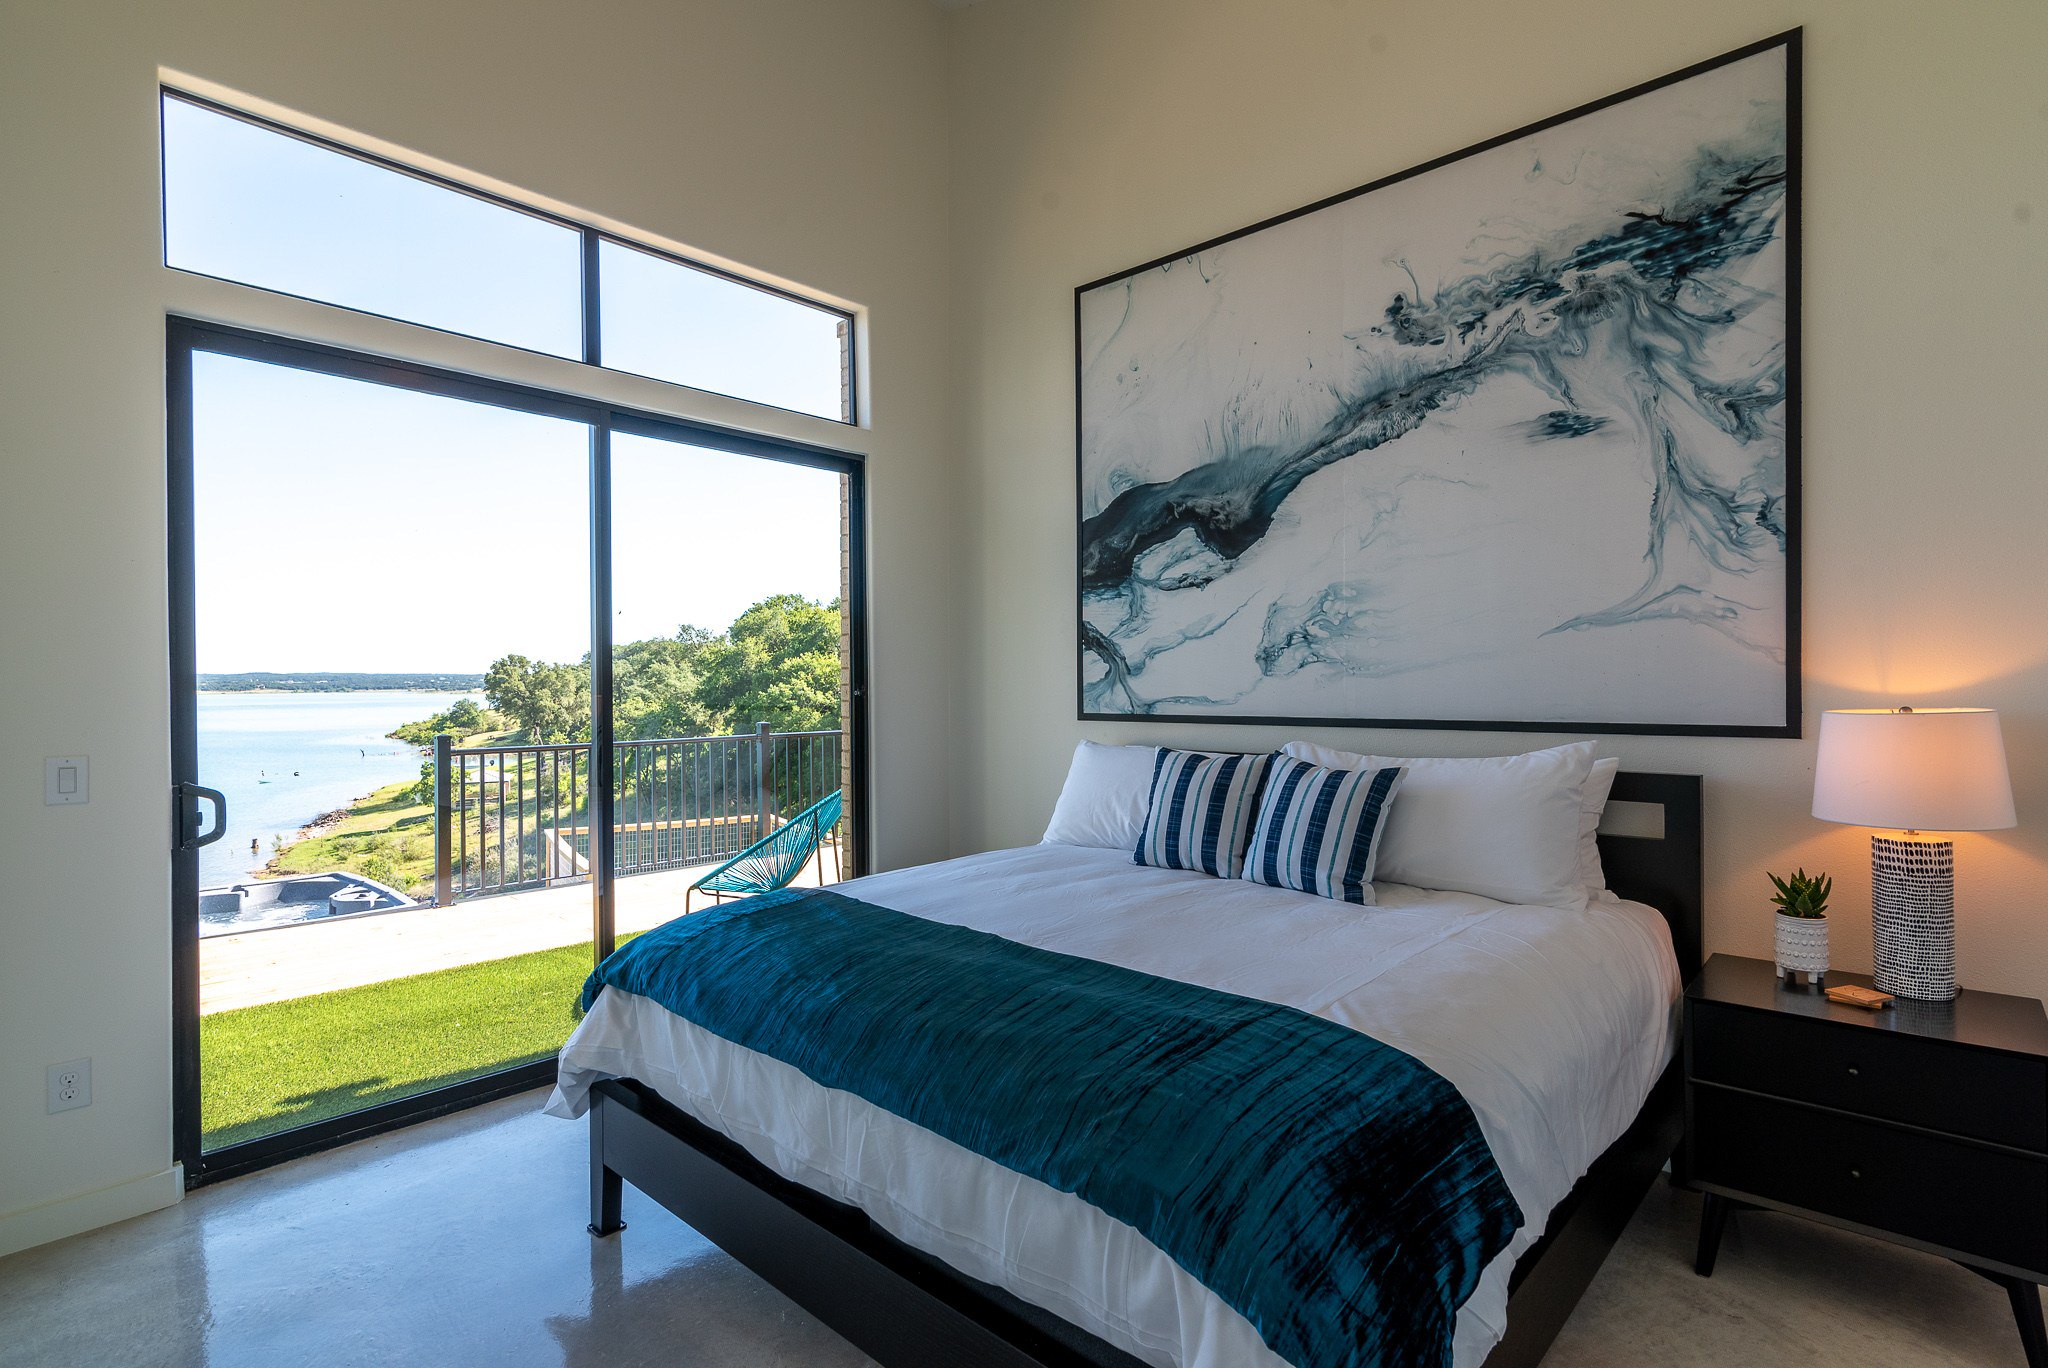 Happy Owl Lakehouse Linens were purchased from our procurement service